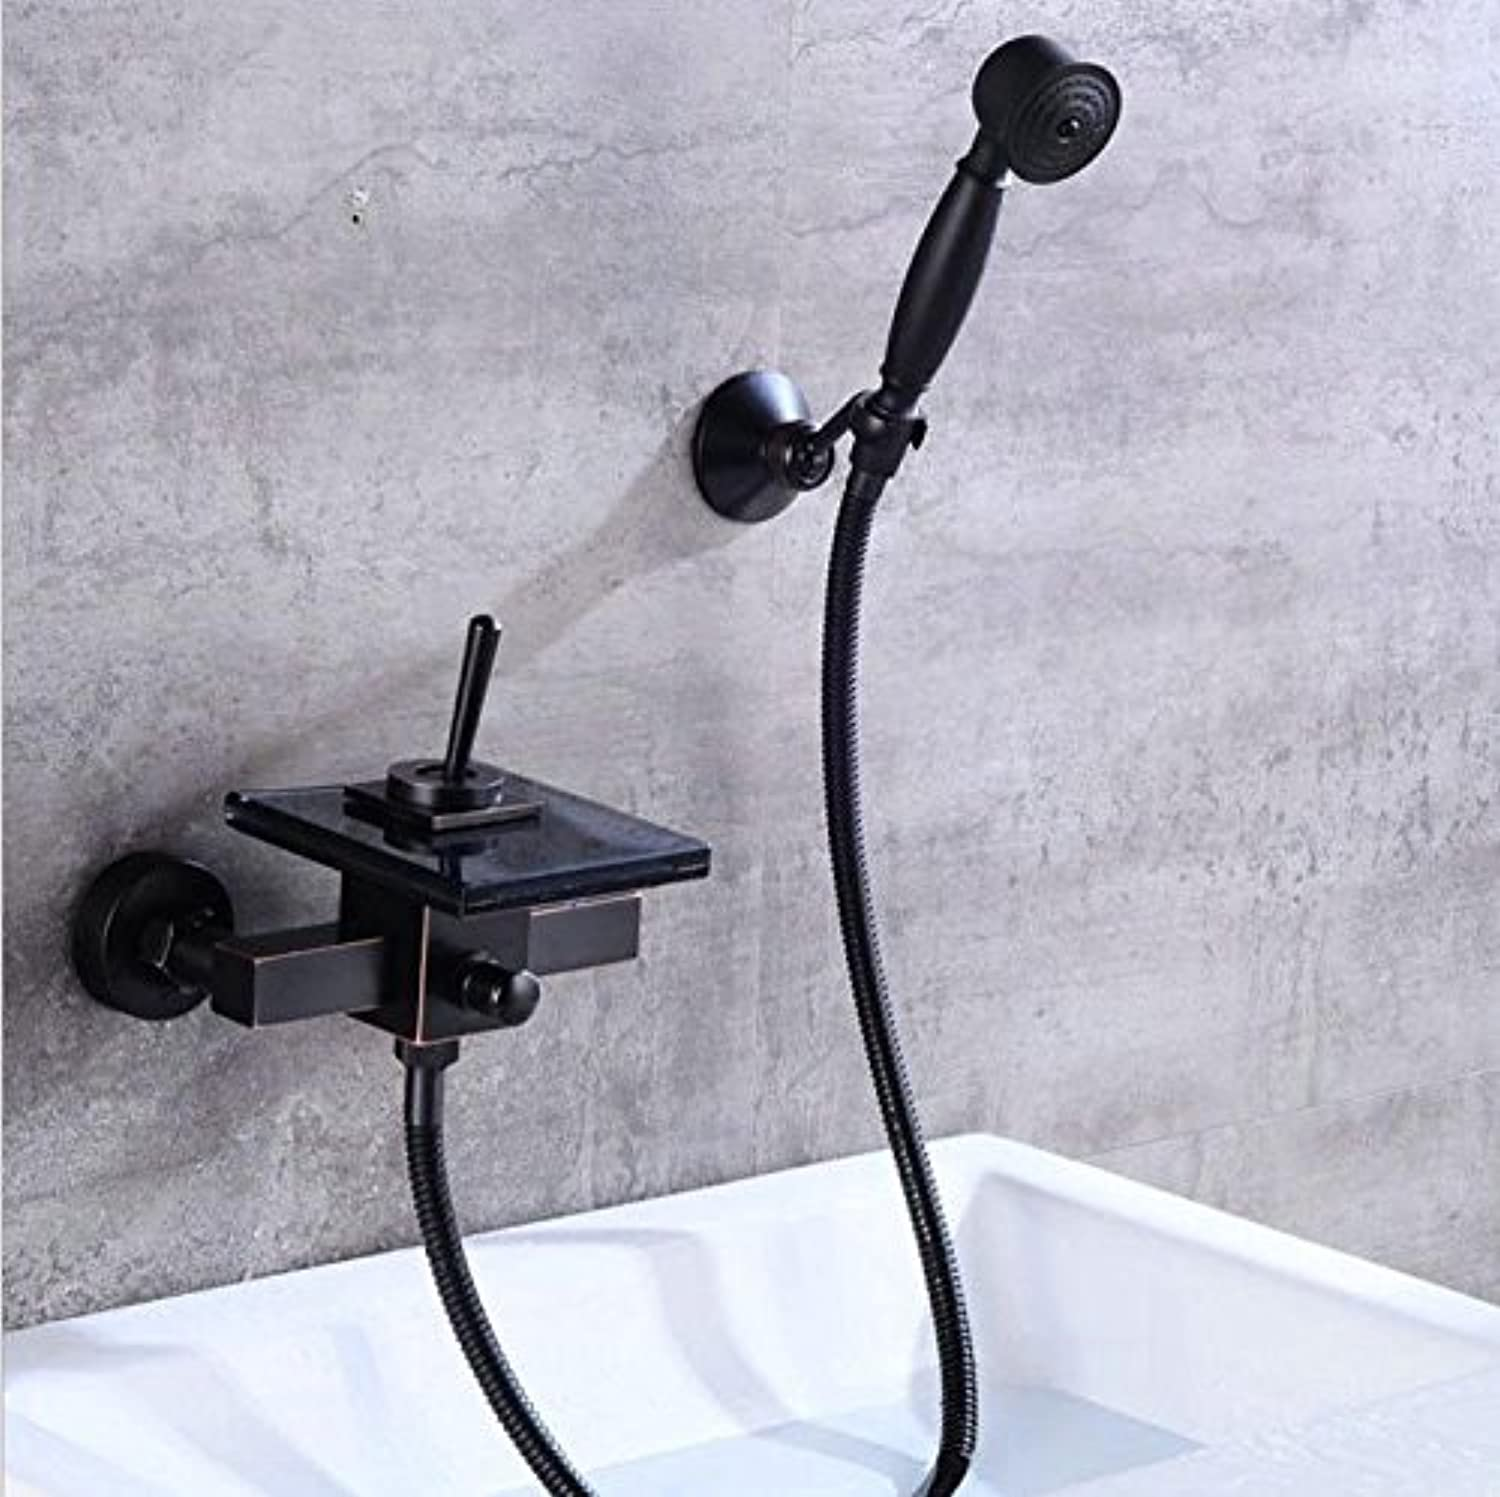 ETERNAL QUALITY Bathroom Sink Basin Tap Brass Mixer Tap Washroom Mixer Faucet Black tub shower shower cold water taps into the wall black glass easy waterfall shower fauc